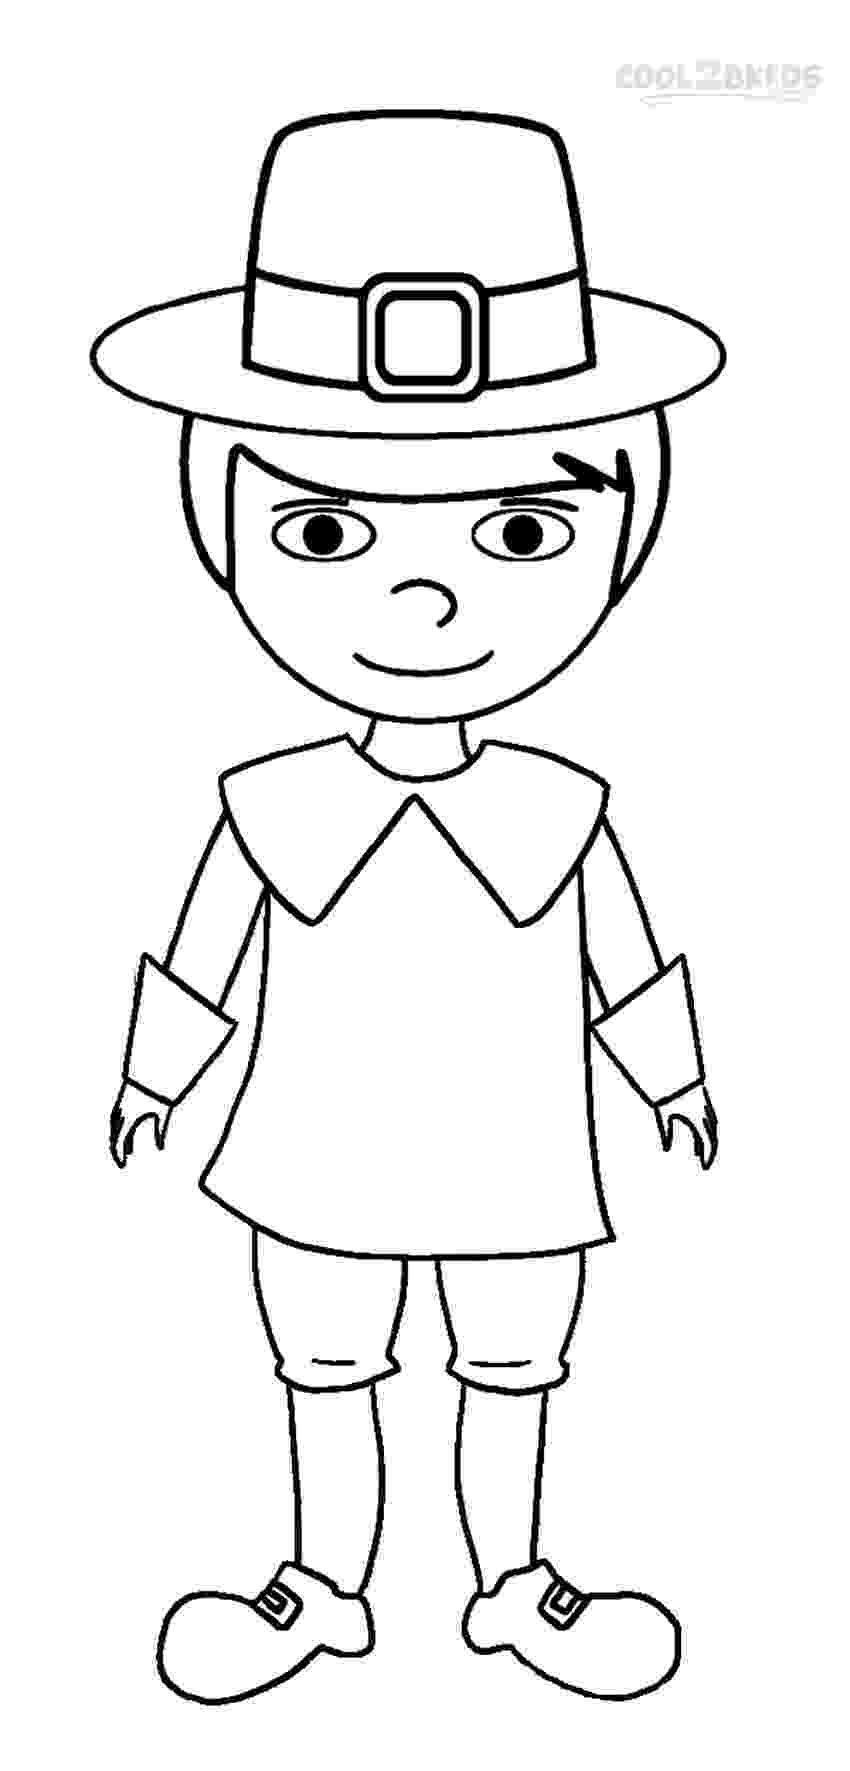 pilgrim hat coloring page mommy mondays holiday coloring pages party in peace pilgrim coloring hat page